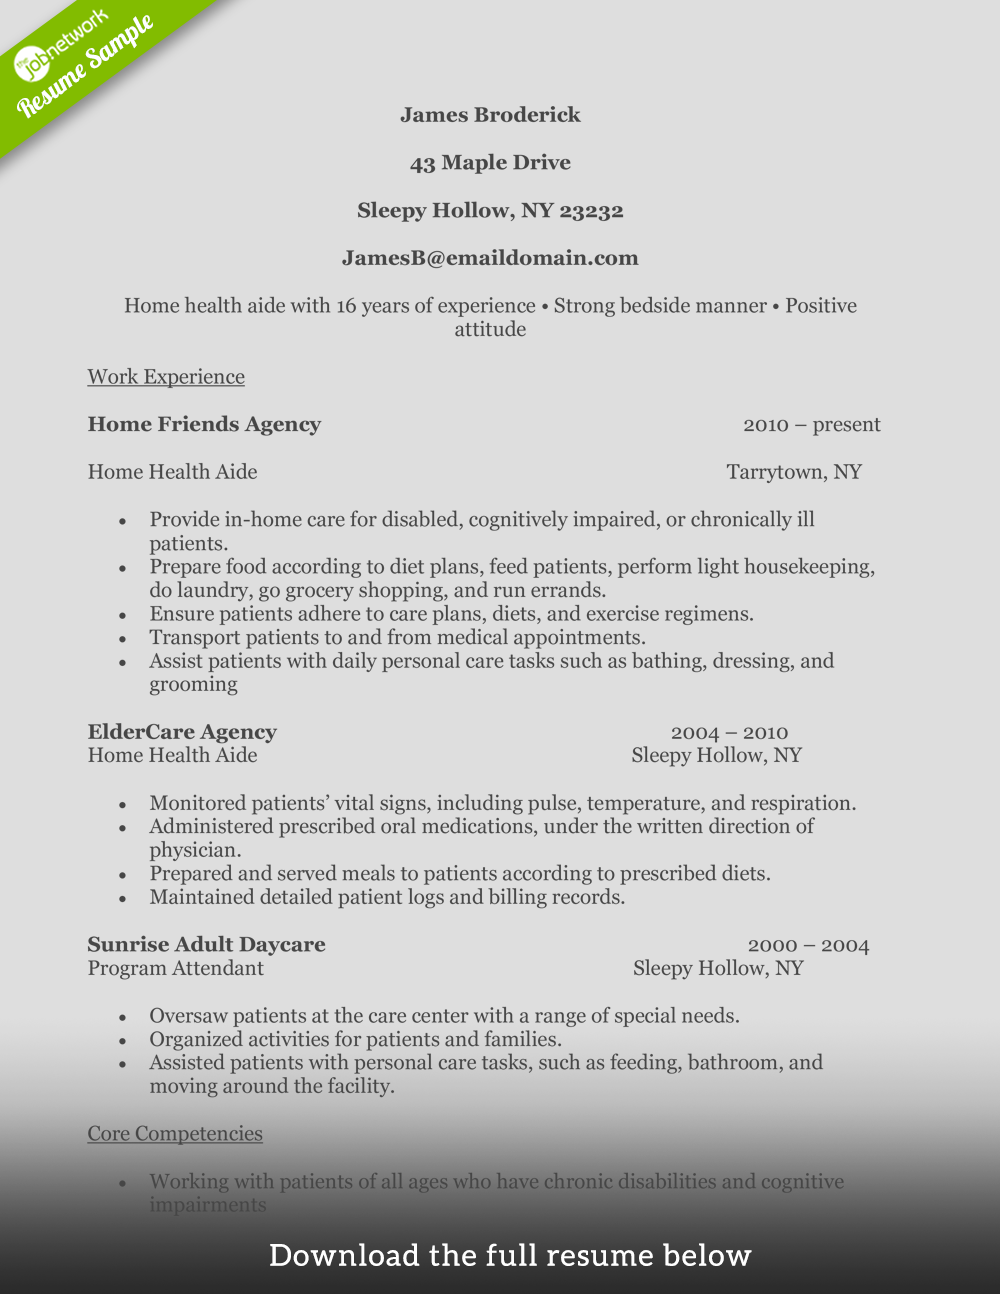 home-health-aide-resume-experiencedl